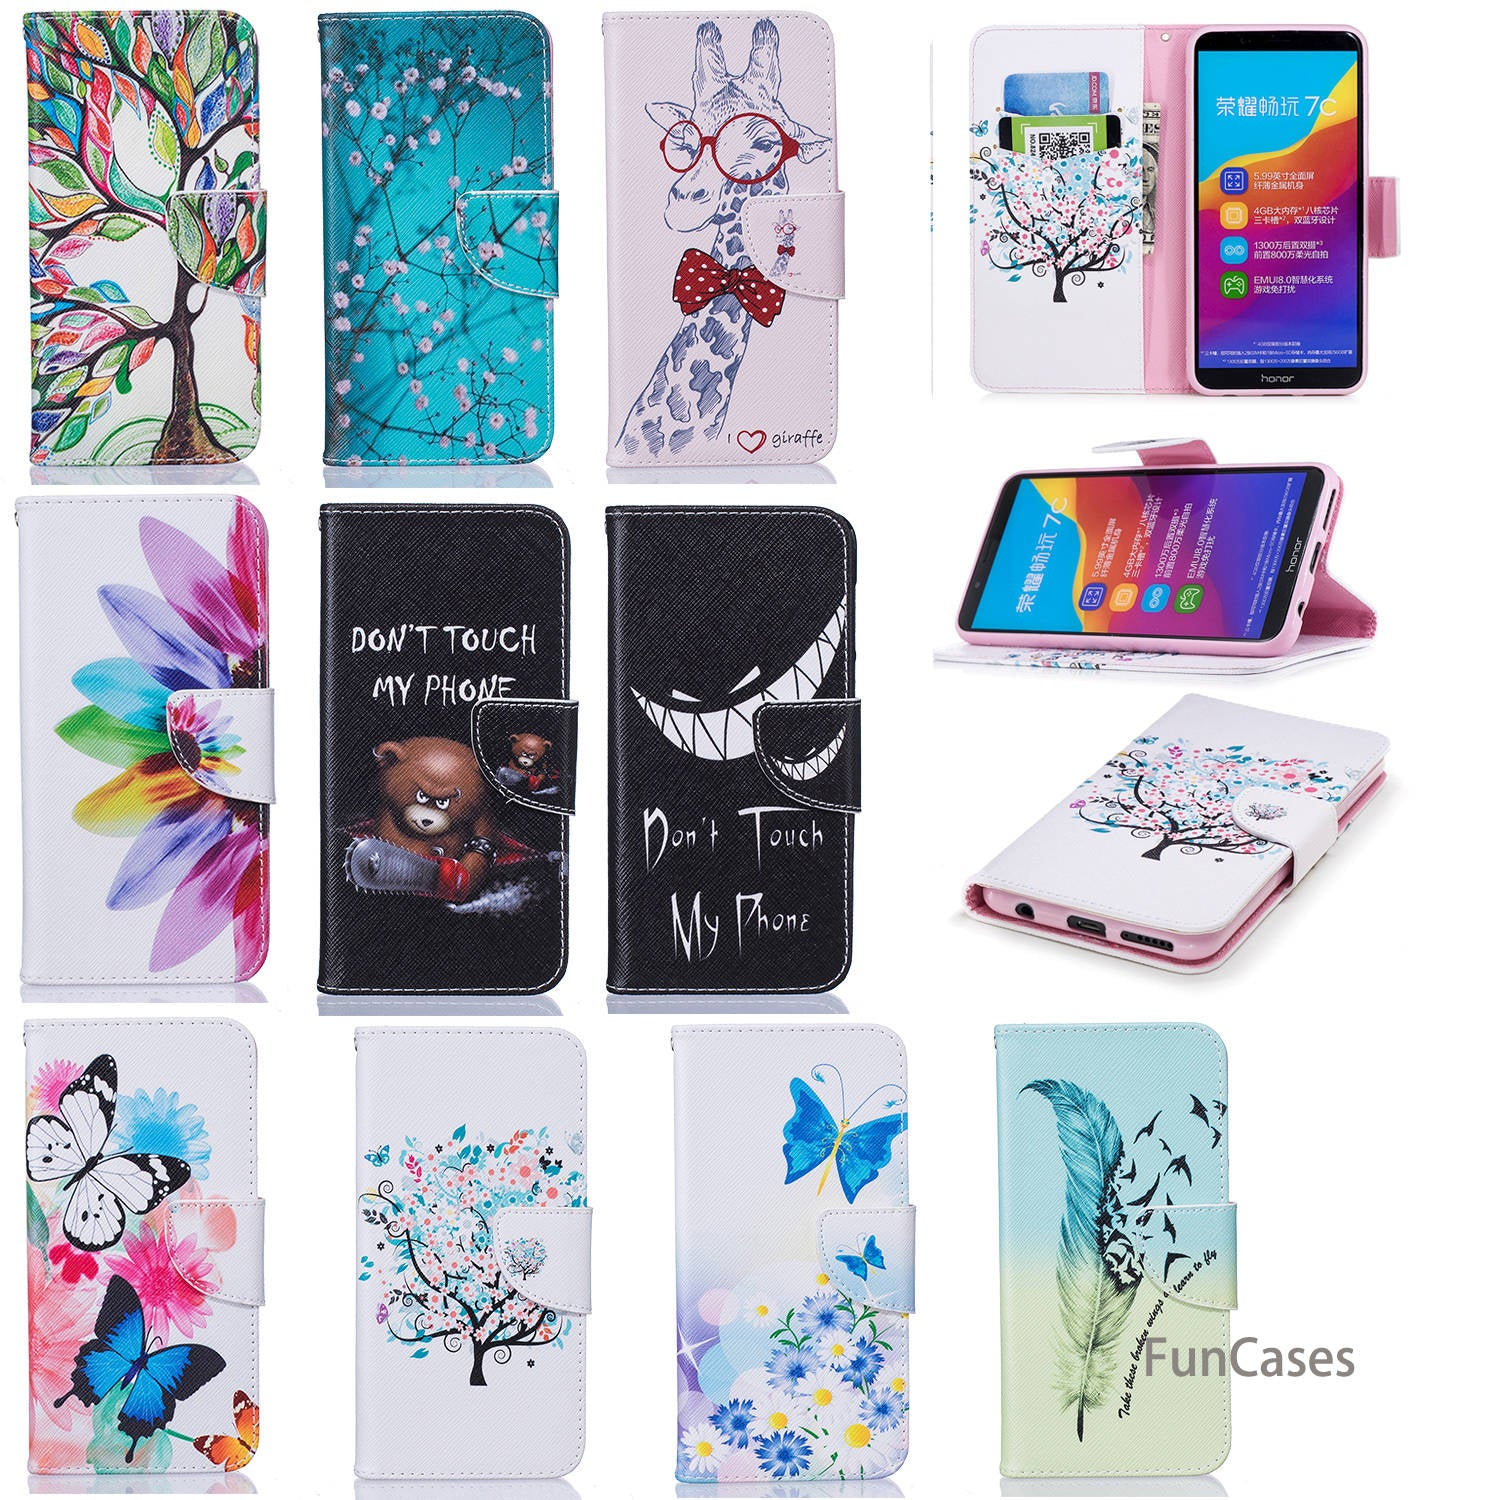 Life Tree Flip Phone Case SFor Etui Huawei Honor 7C Soft TPU Back Cover Celular Metallic Phone Case For Huawei Ascend Honor 7C